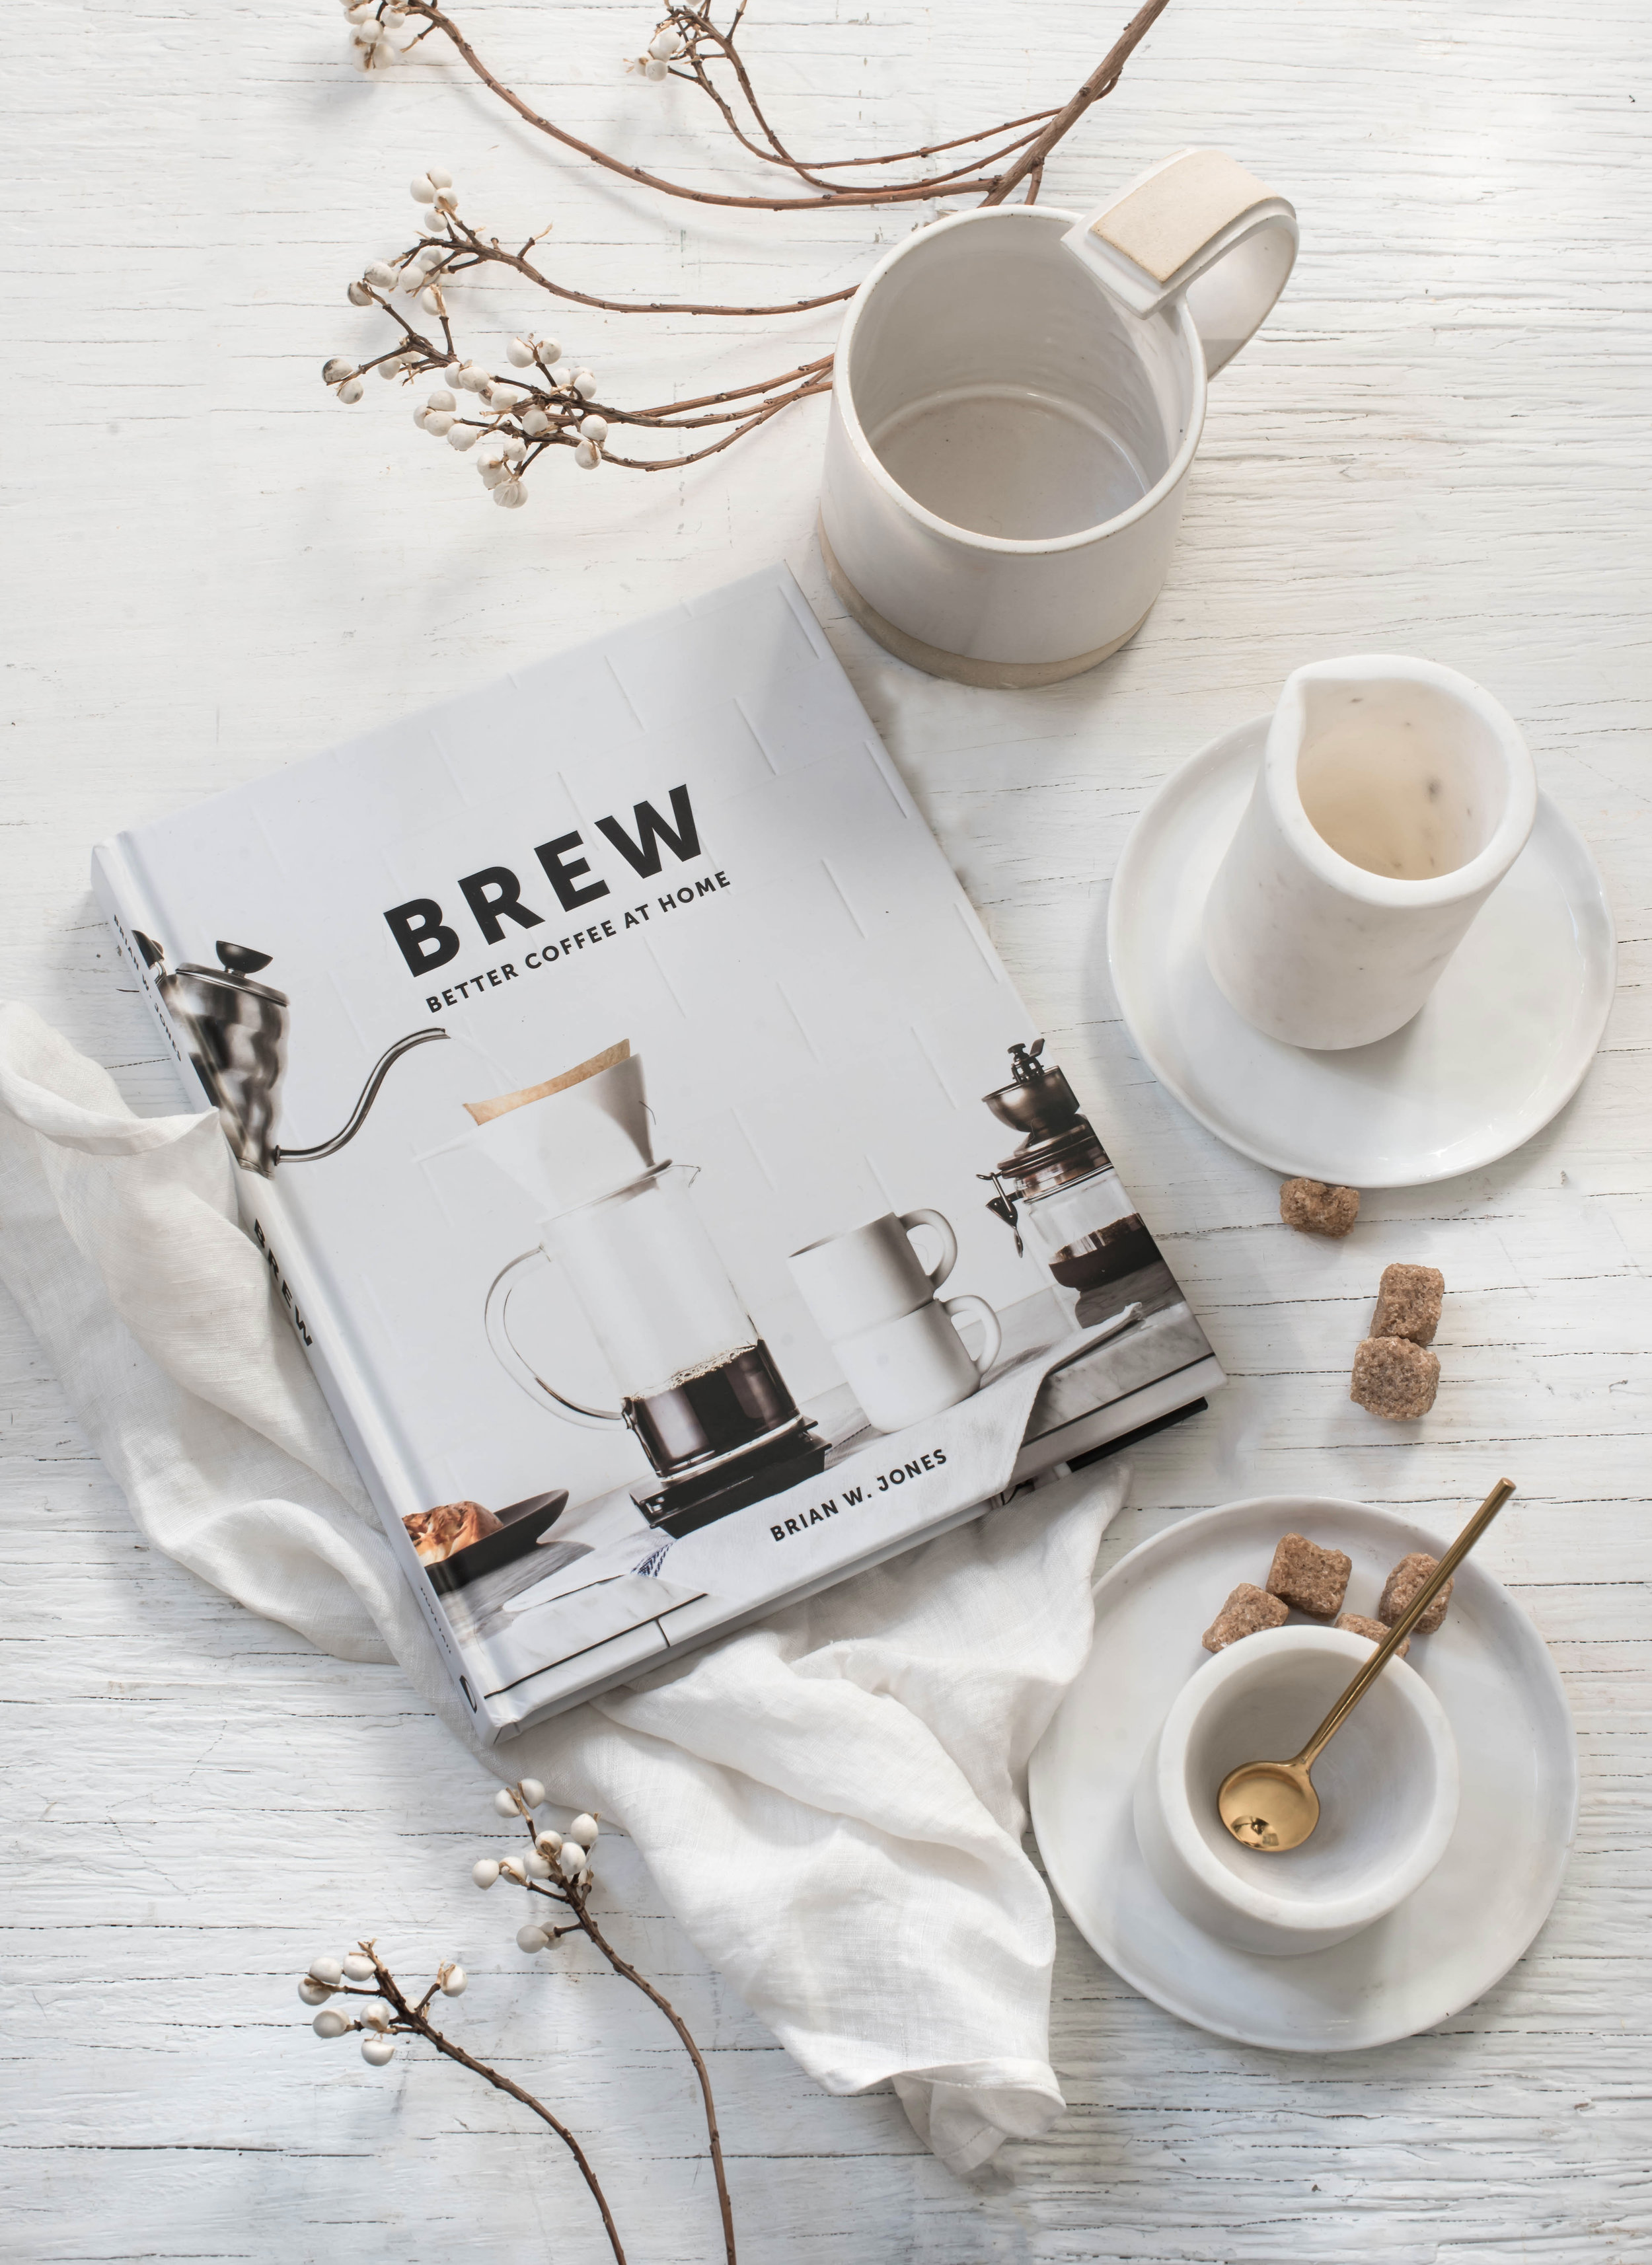 ROSE & IVY Journal The Gift Guide for the Caffeine Lover Brew Better Coffee at Home, Mondays Ceramic Mug and Hawkins New York Creamer